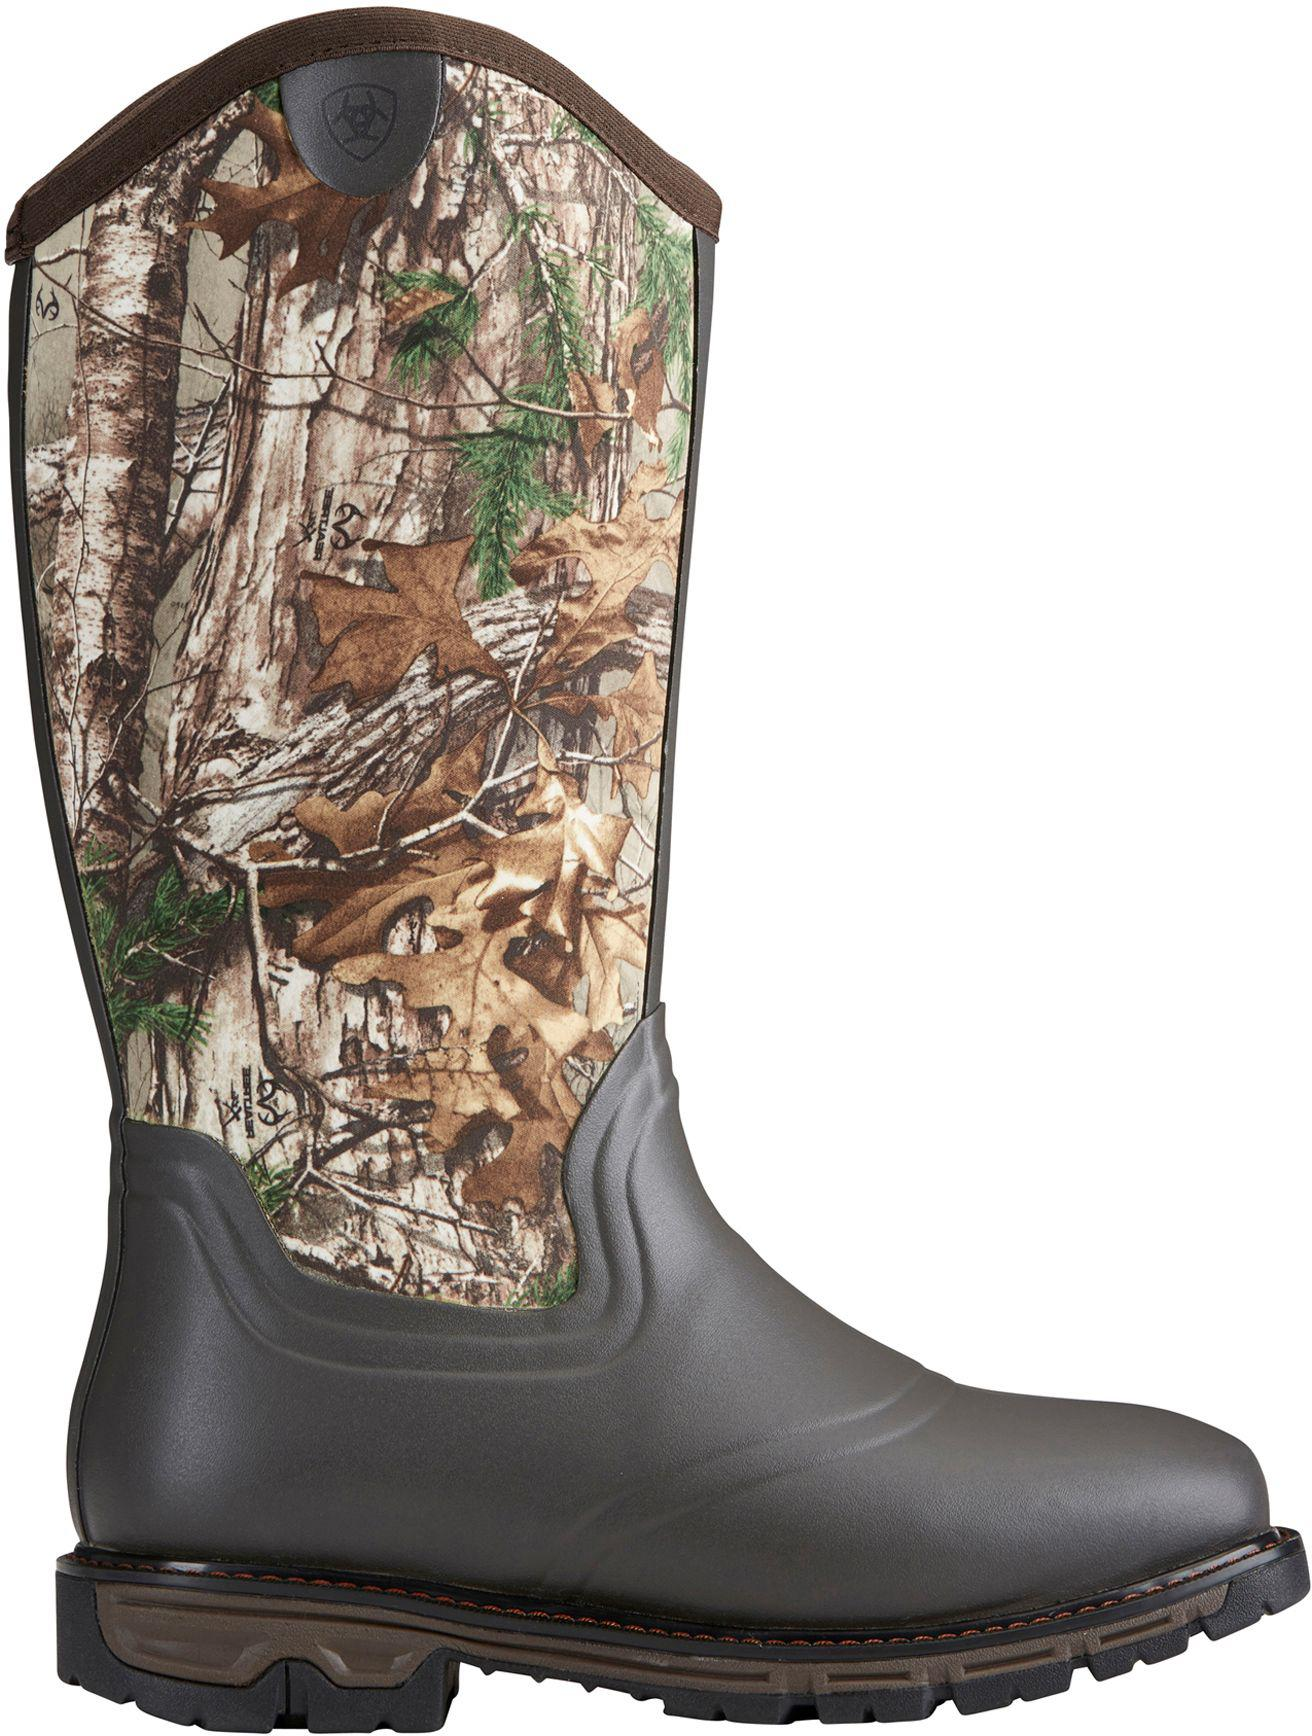 Ariat Conquest Wide Square Toe Insulated Hiking Boot(Men's) -Dark Brown Rubber/Neoprene Cheap Lowest Price Best Place Online Outlet Online Visit New Cheap Online uxJKpxxaYr